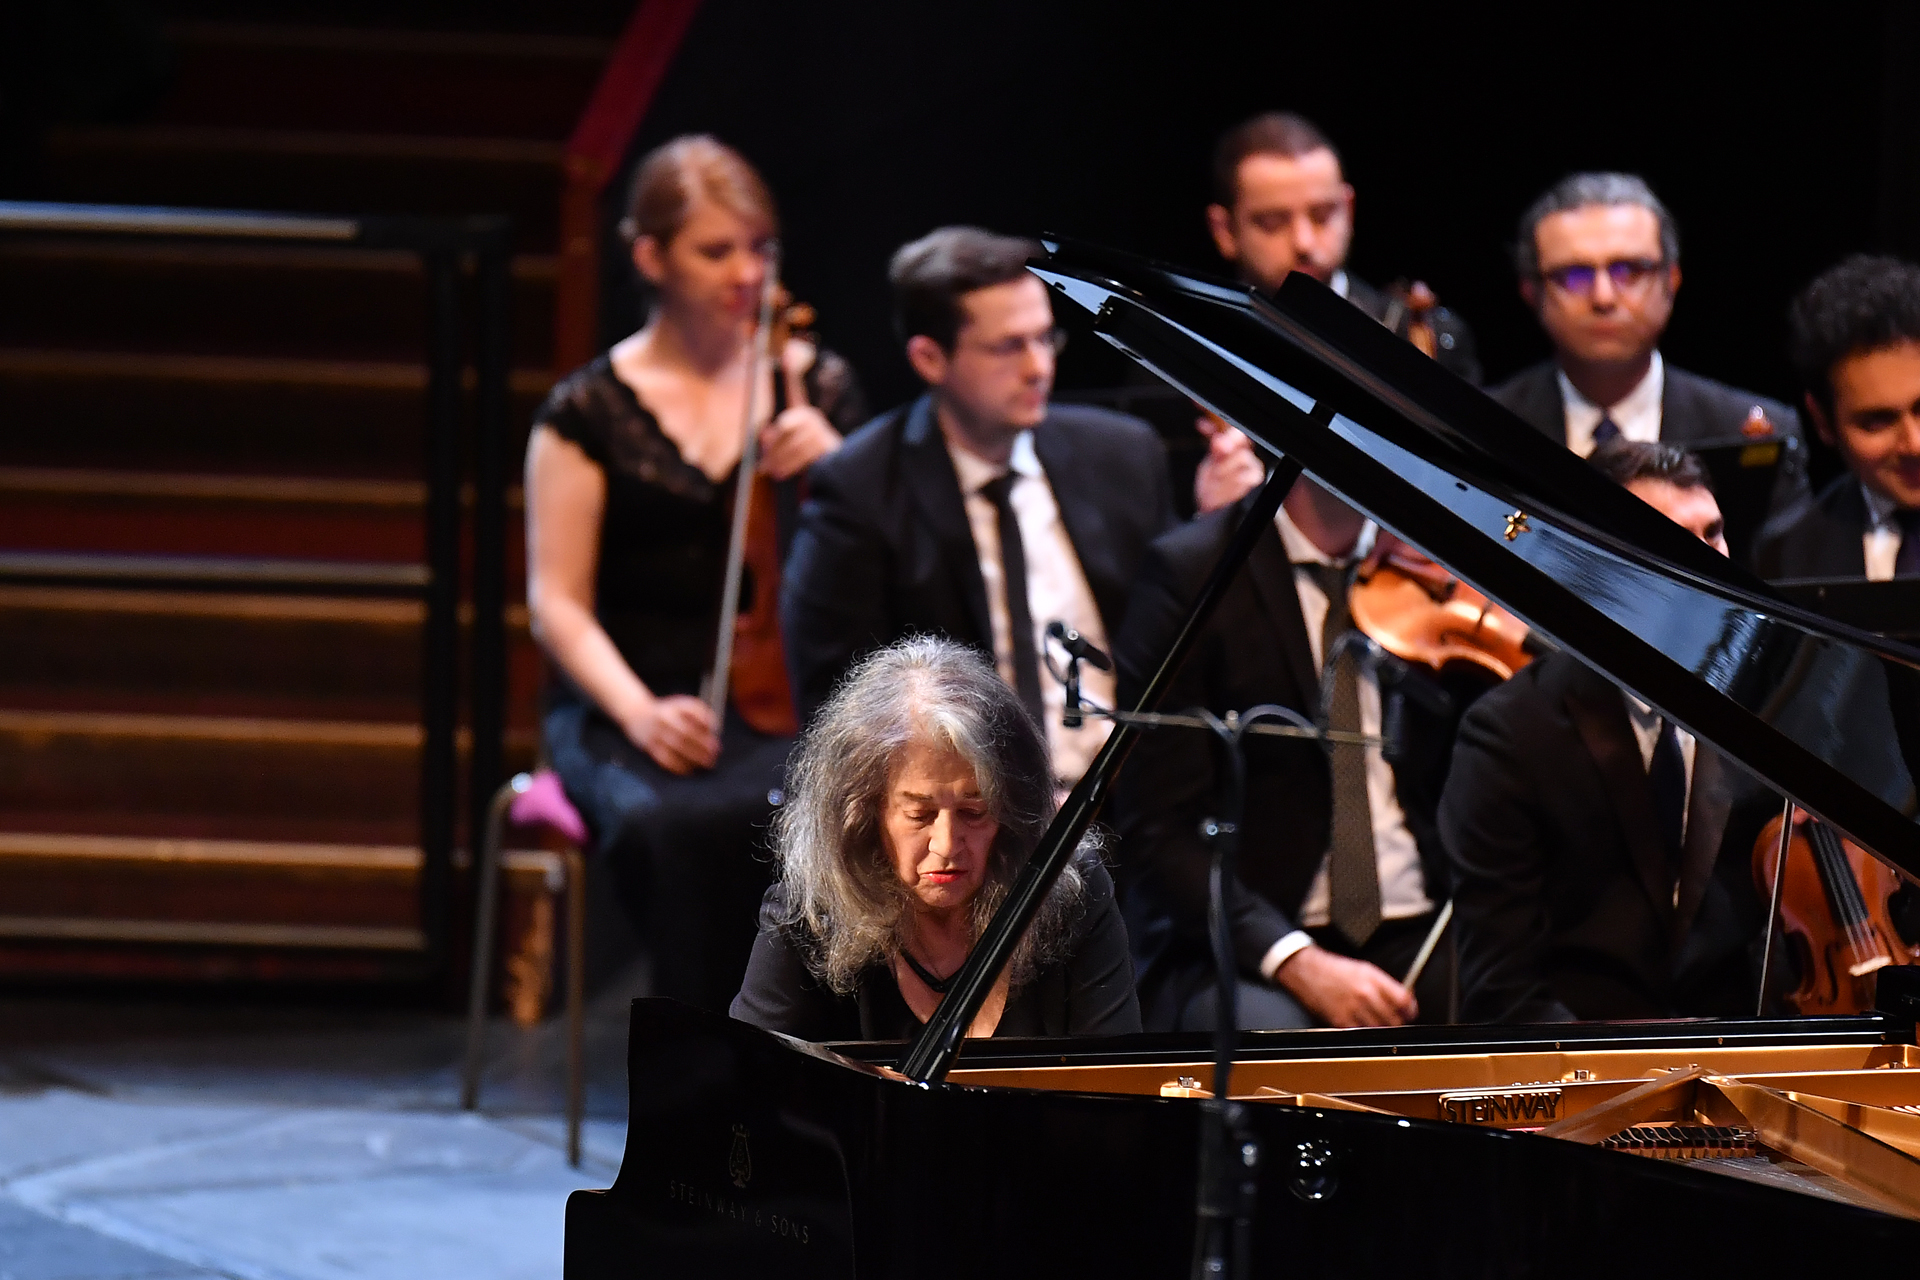 Martha Argerich at the Proms